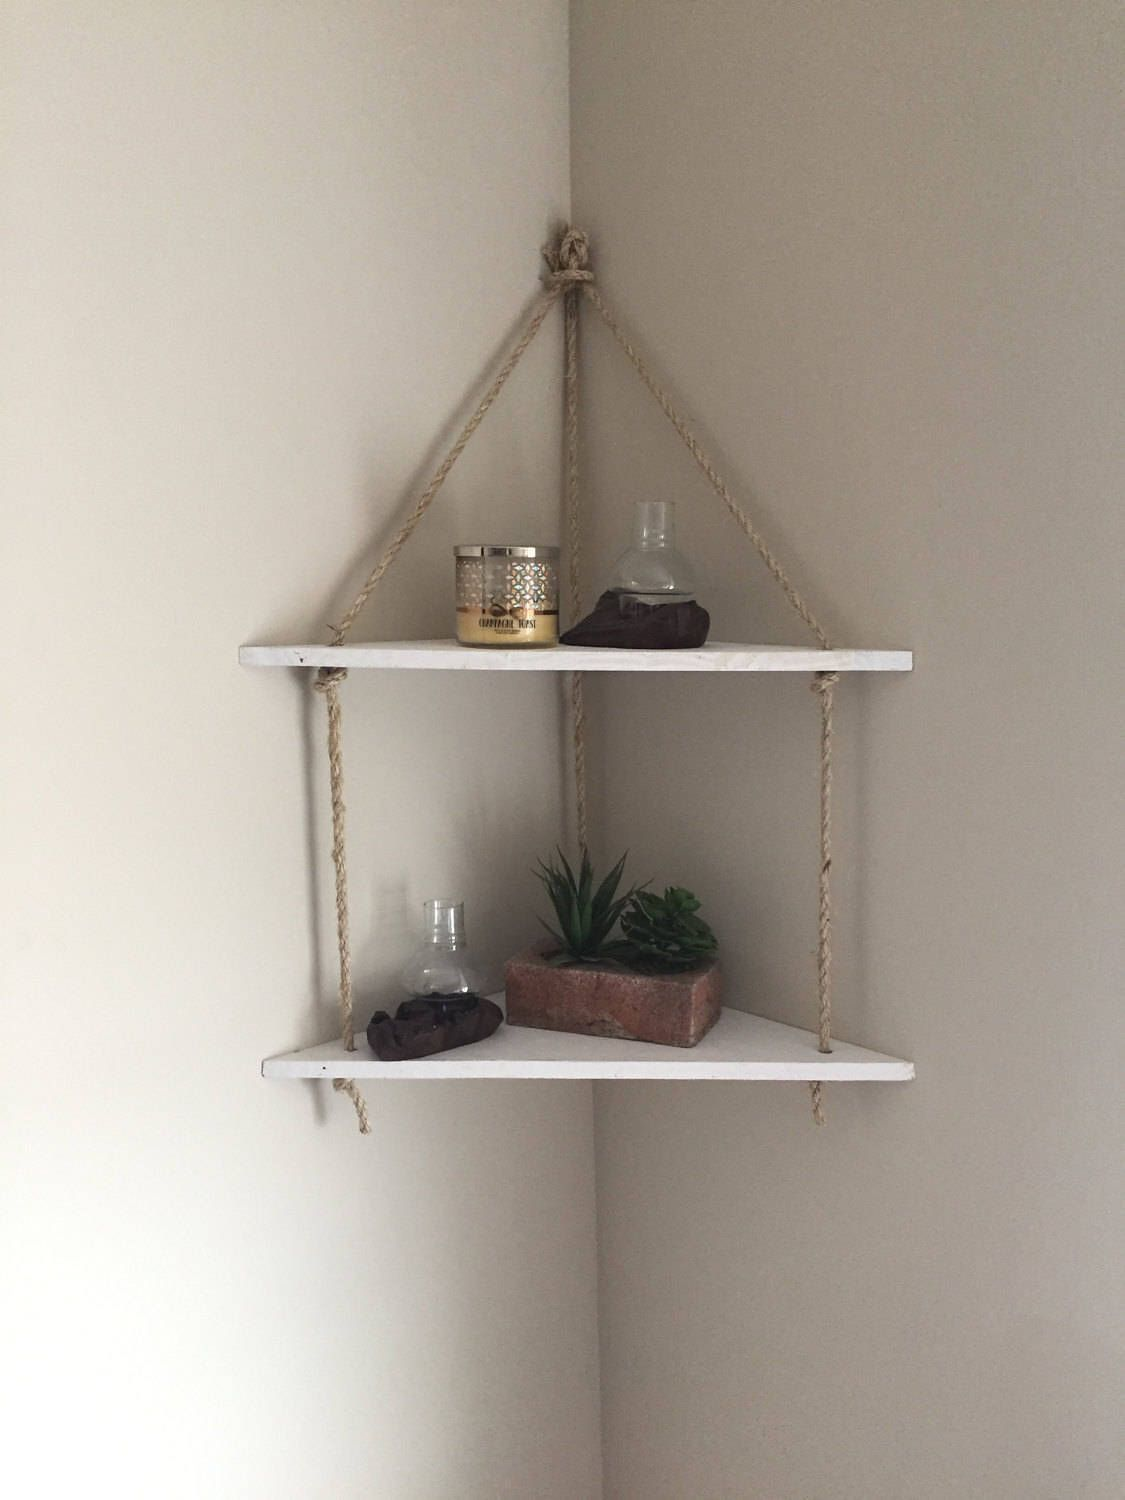 Pin By Jessica Orr On Diy Projects Corner Shelves Corner Wall Shelves Diy Corner Shelf